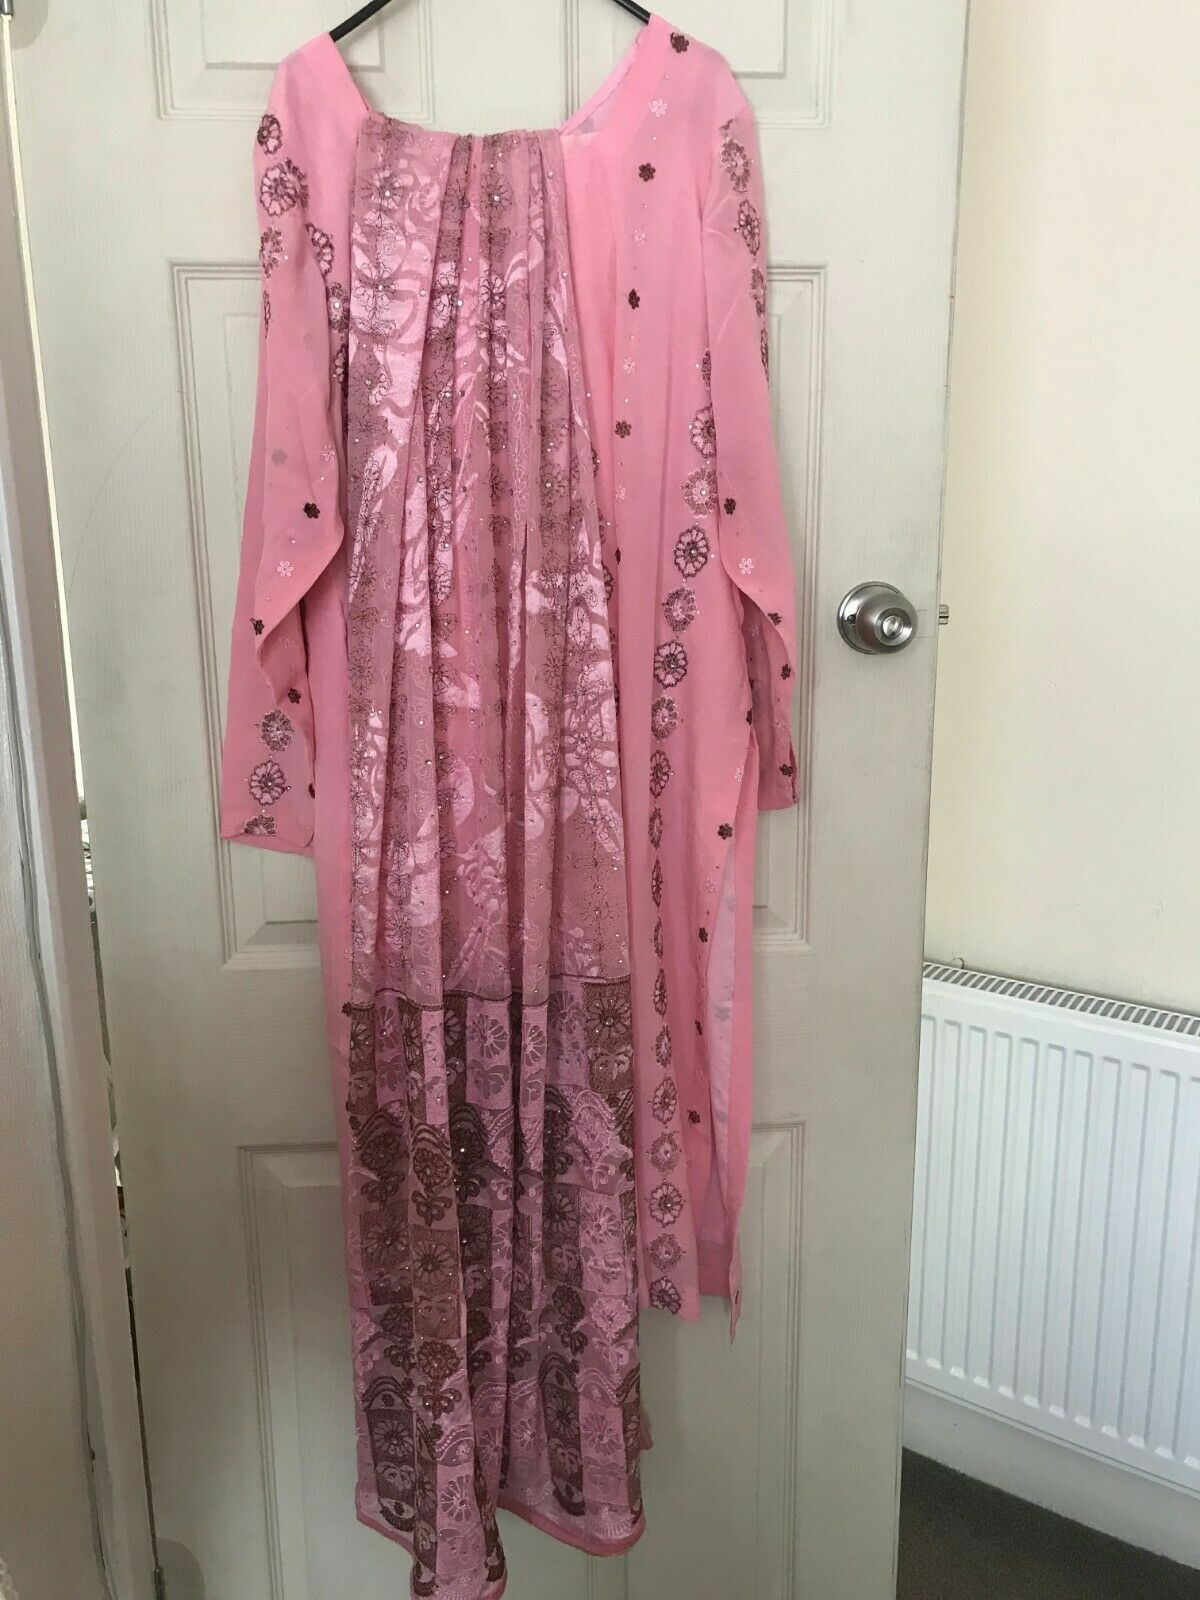 LADIES GORGEOUS SHALWAR KAMEEZ WITH STONE WORK,HARDLY USED,DRY CLEANED ,BARGAIN